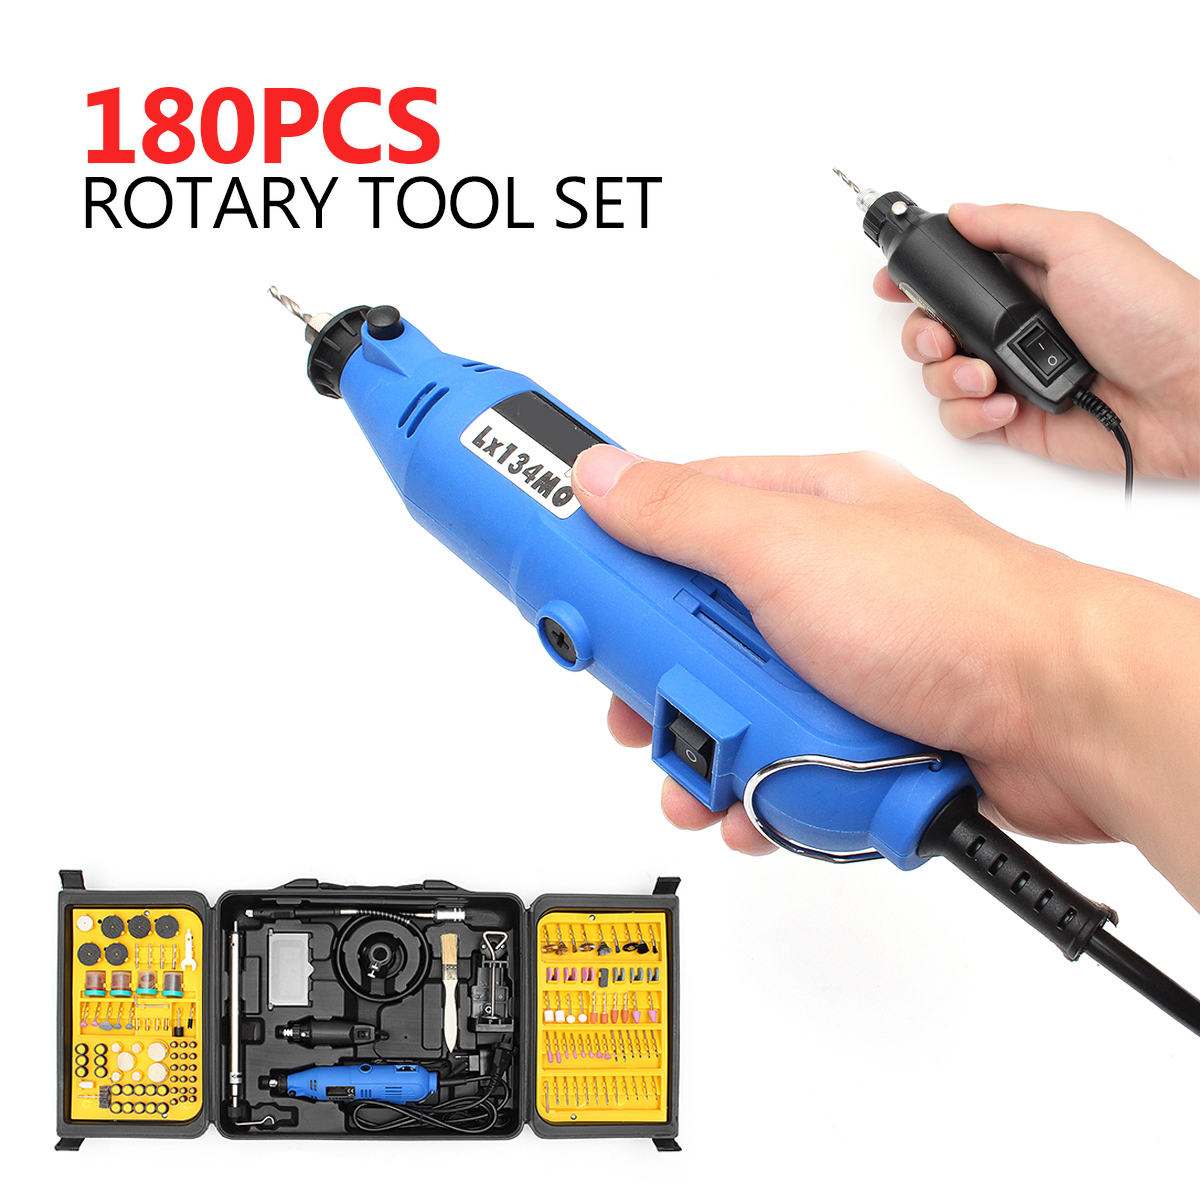 180Pcs Mini Rotary Tool Set Electric Drill Grinder Engraver Sander Polisher Craving DIY Power Tools Accessories